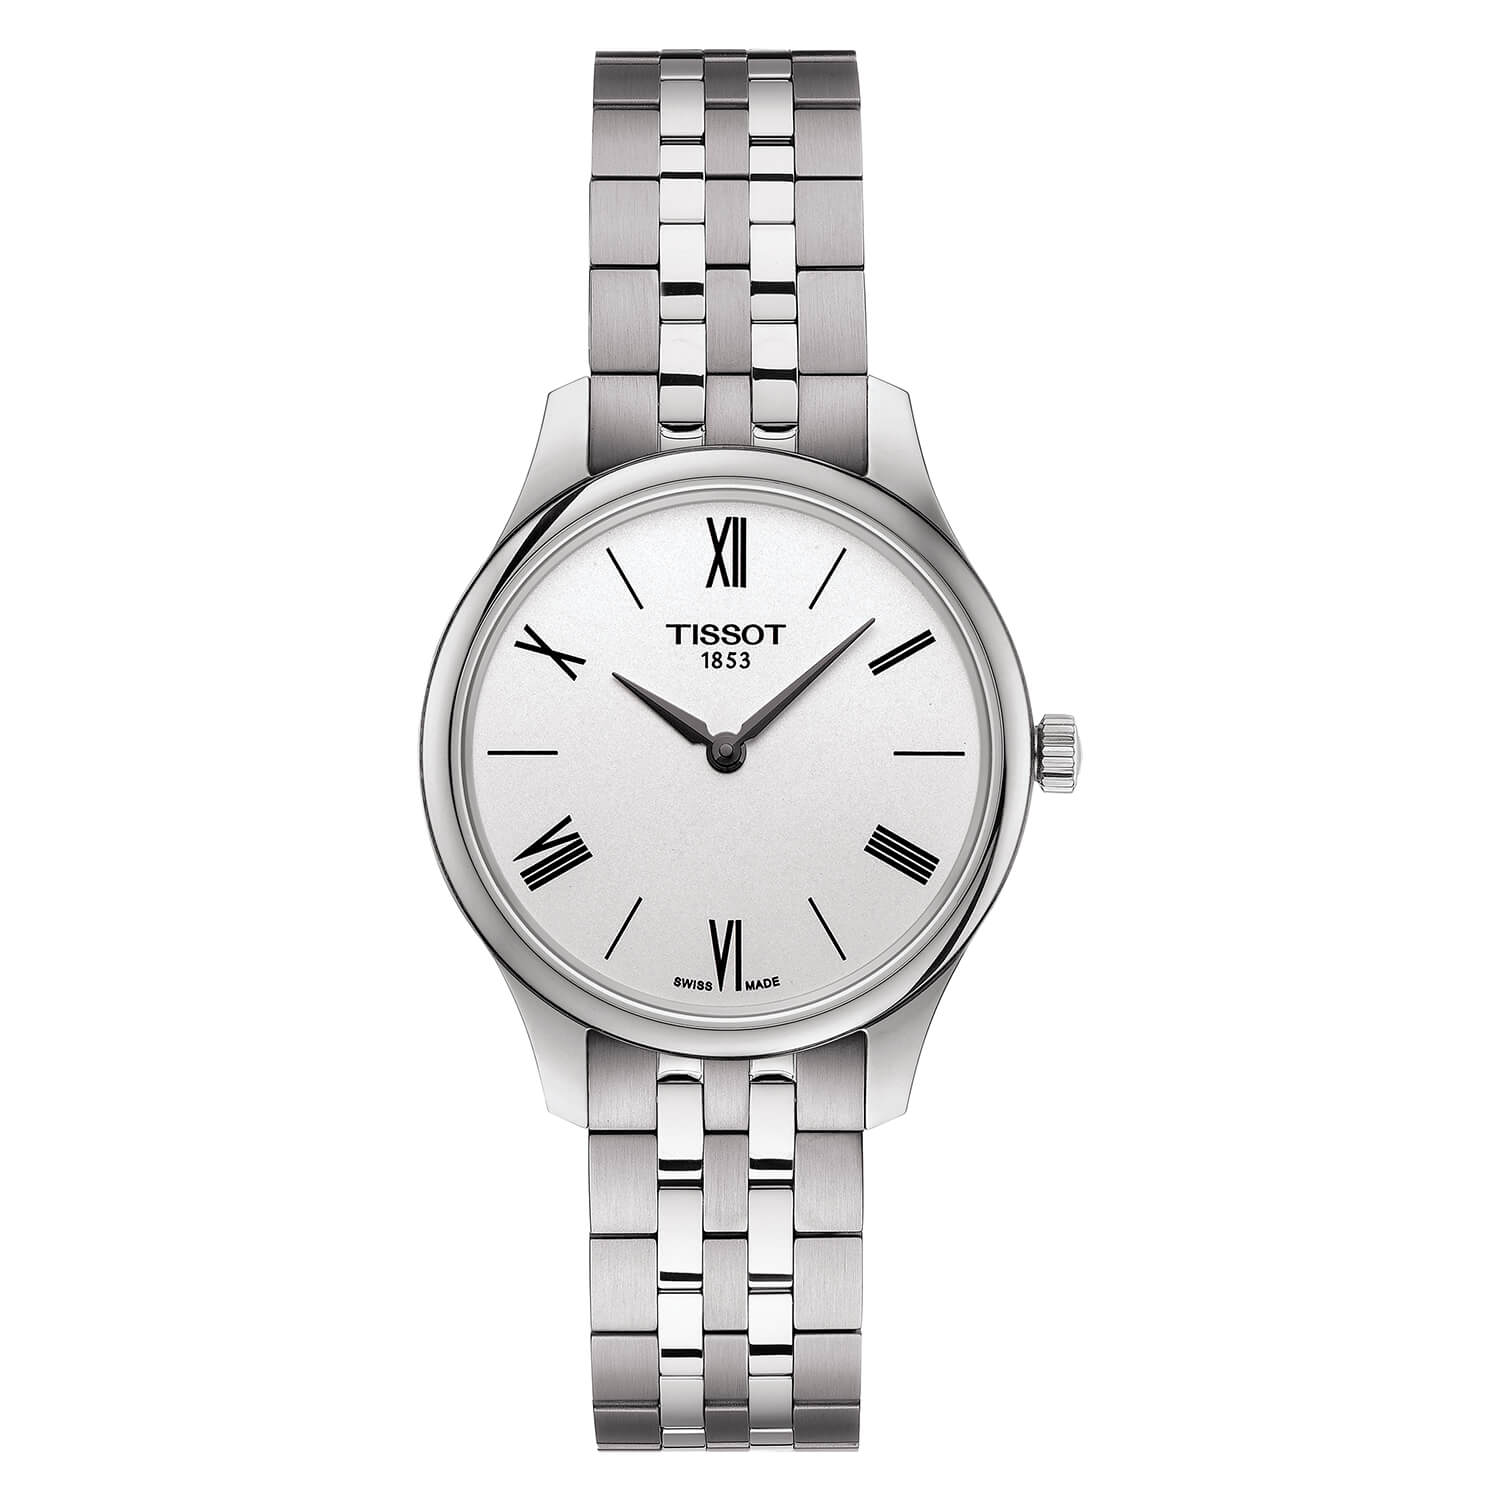 Tissot Tradition 31mm White Dial Roman Numerals Steel Case Bracelet Watch